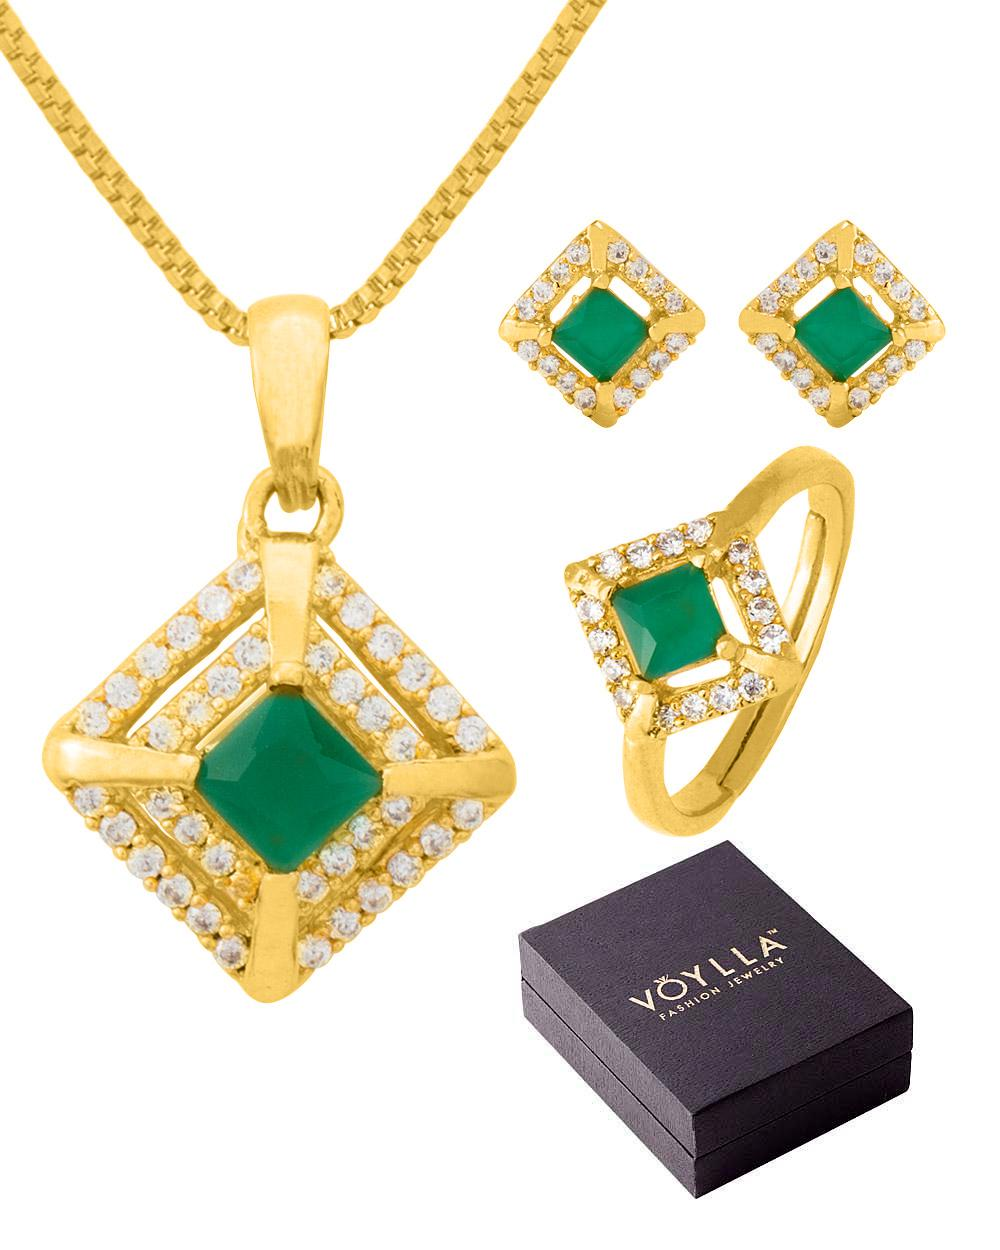 Voylla Jewelry Box Set With Cz Studded Pendant Set & Adjustable Ring